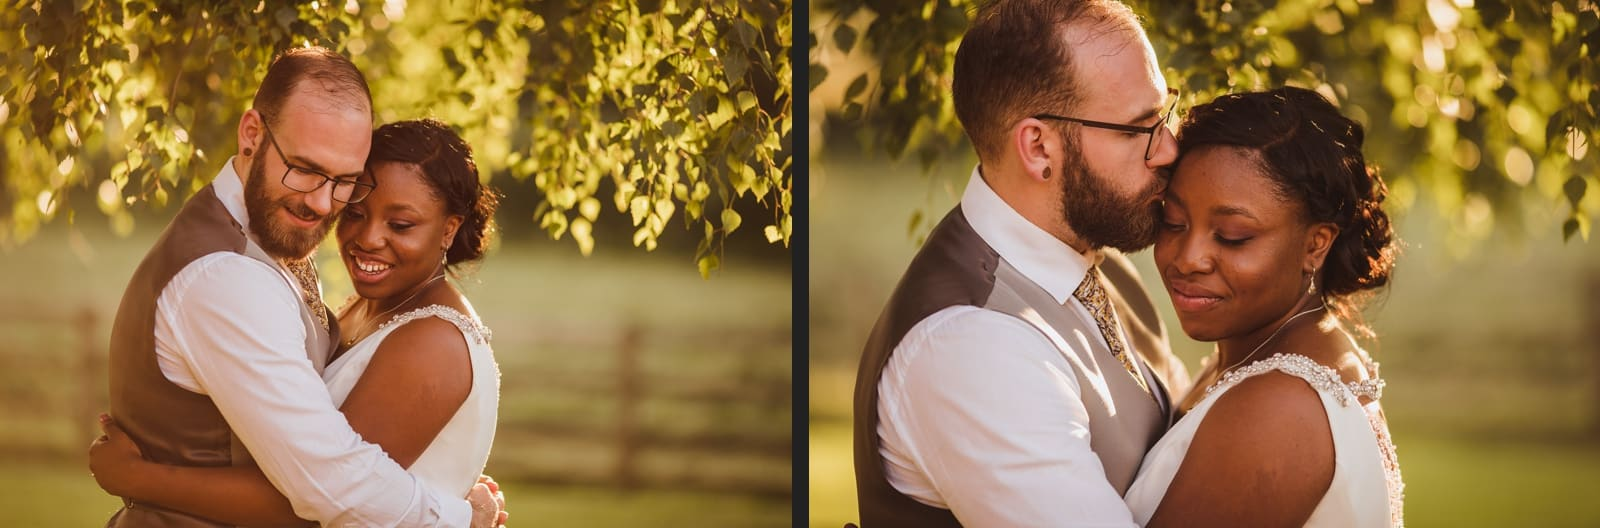 Cotswolds Wedding Photographer 0121